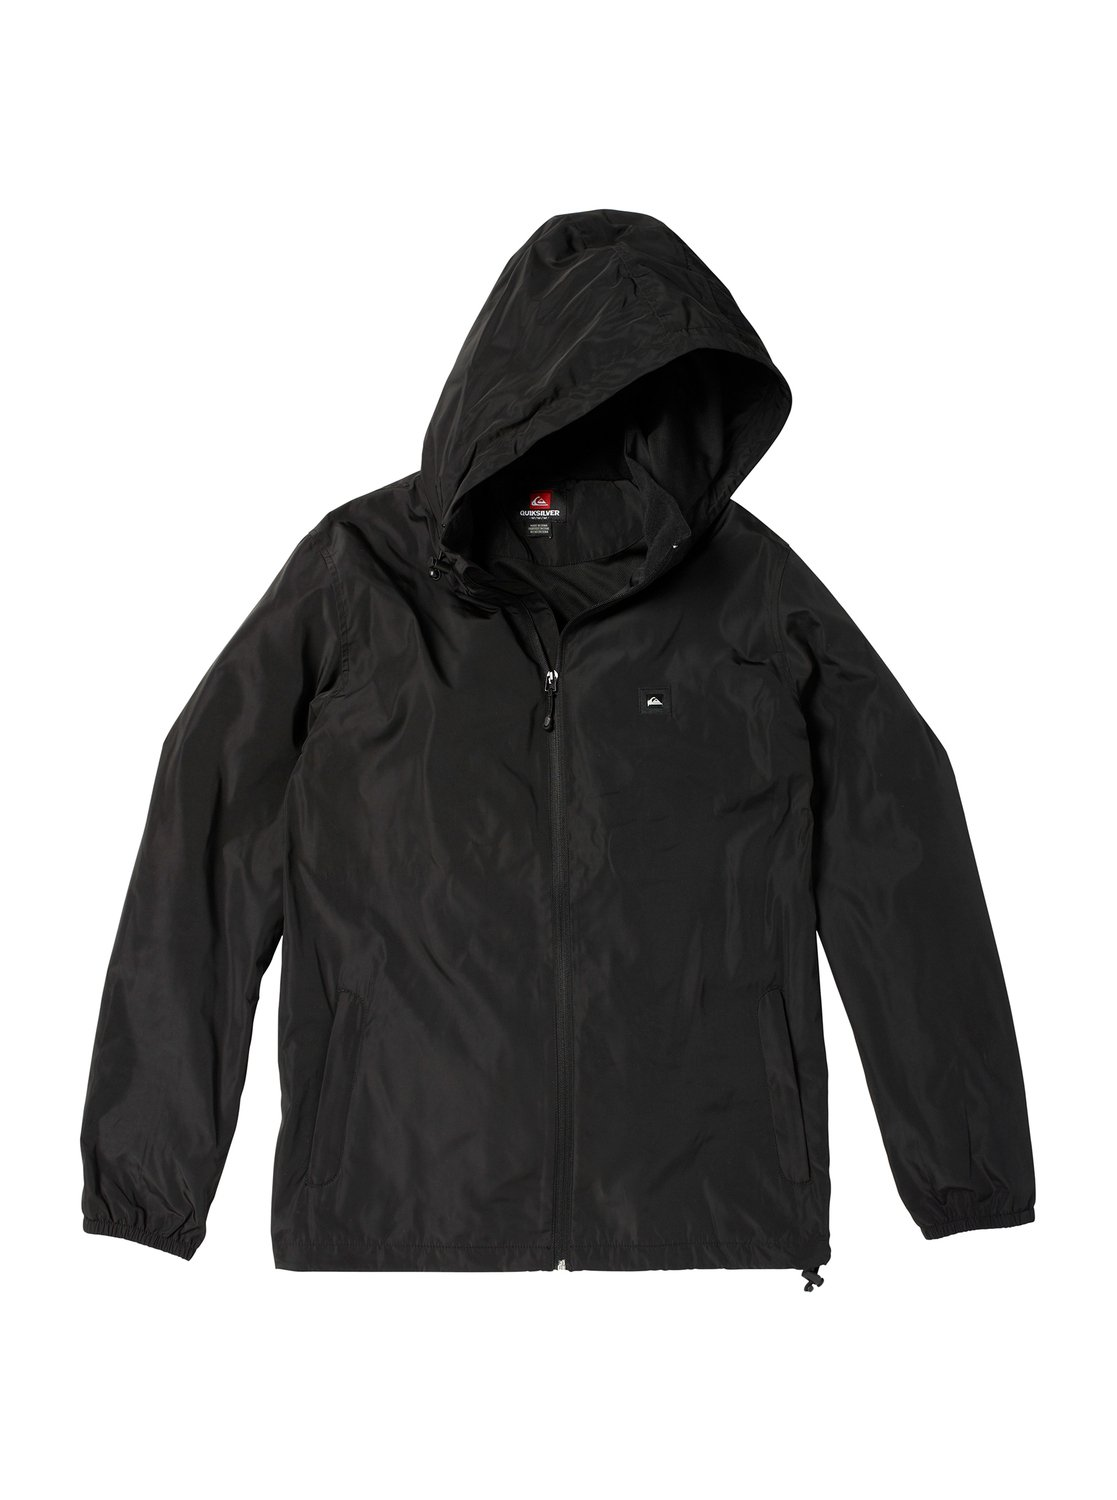 SHELL OUT Windbreaker Jacket AQYJK00003 | Quiksilver